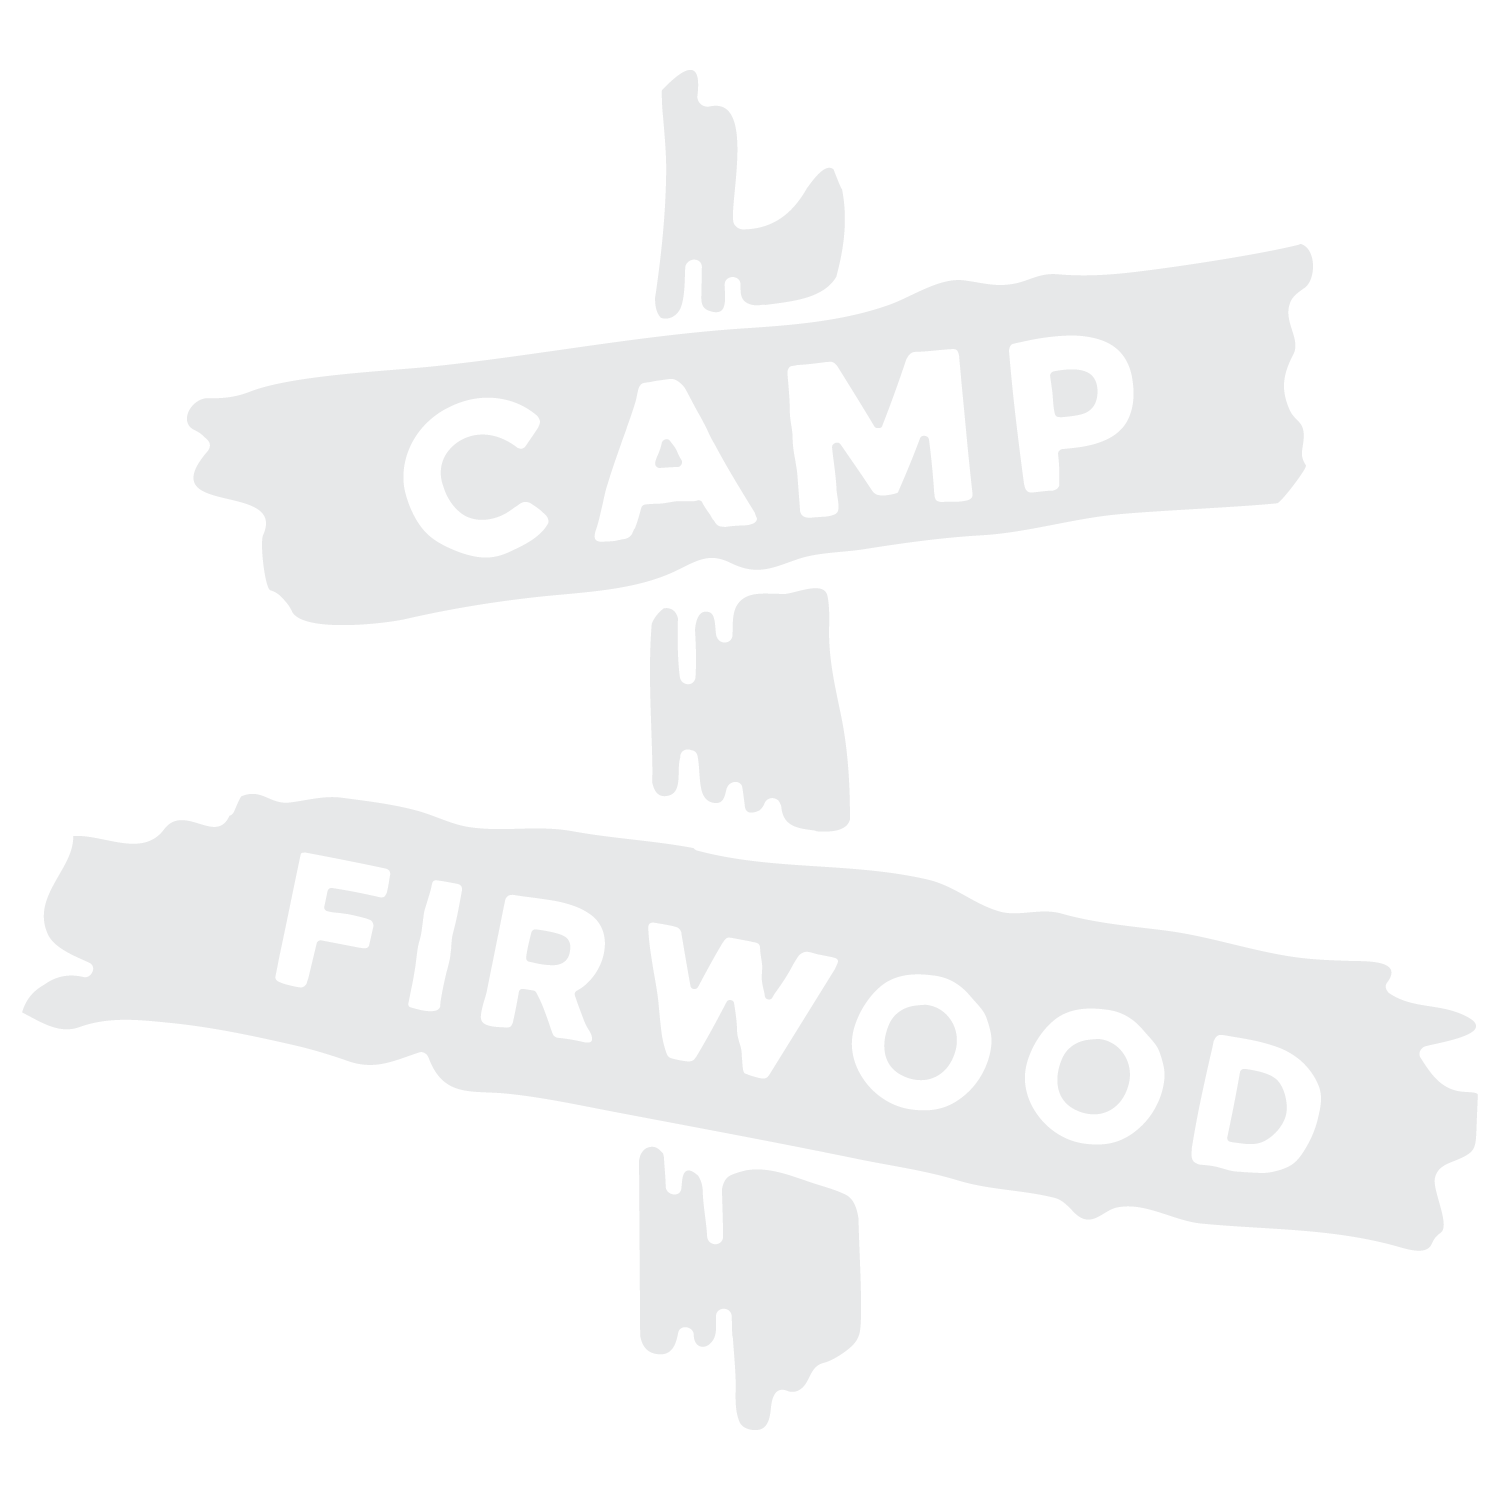 Camp Firwood